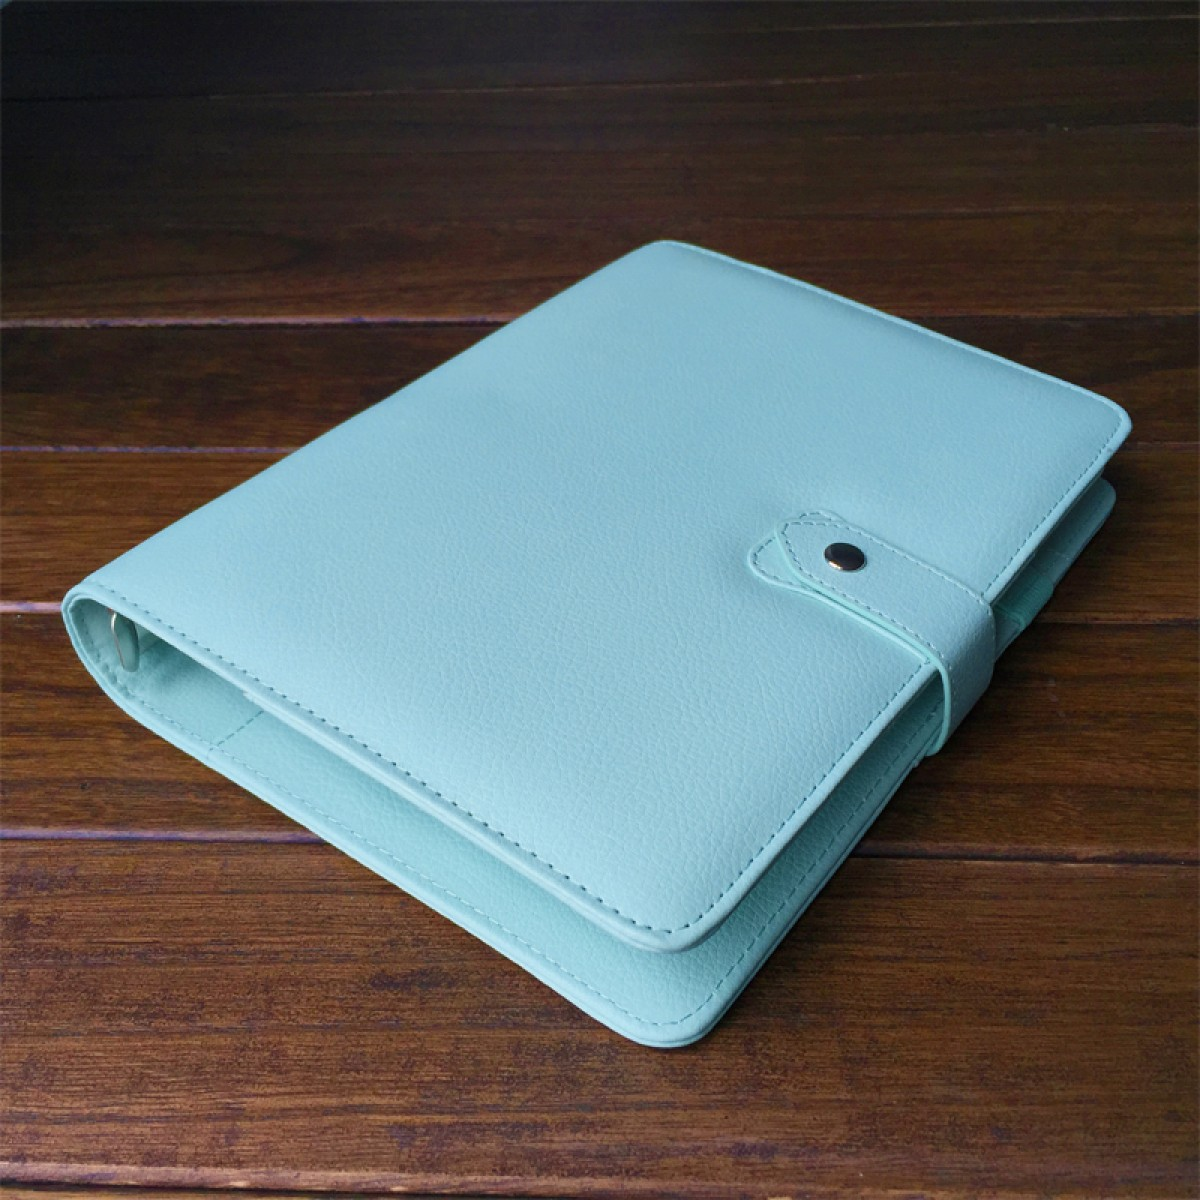 [Minor Flaw] DOKIBOOK MINT WITH SNAP BUTTON LARGE